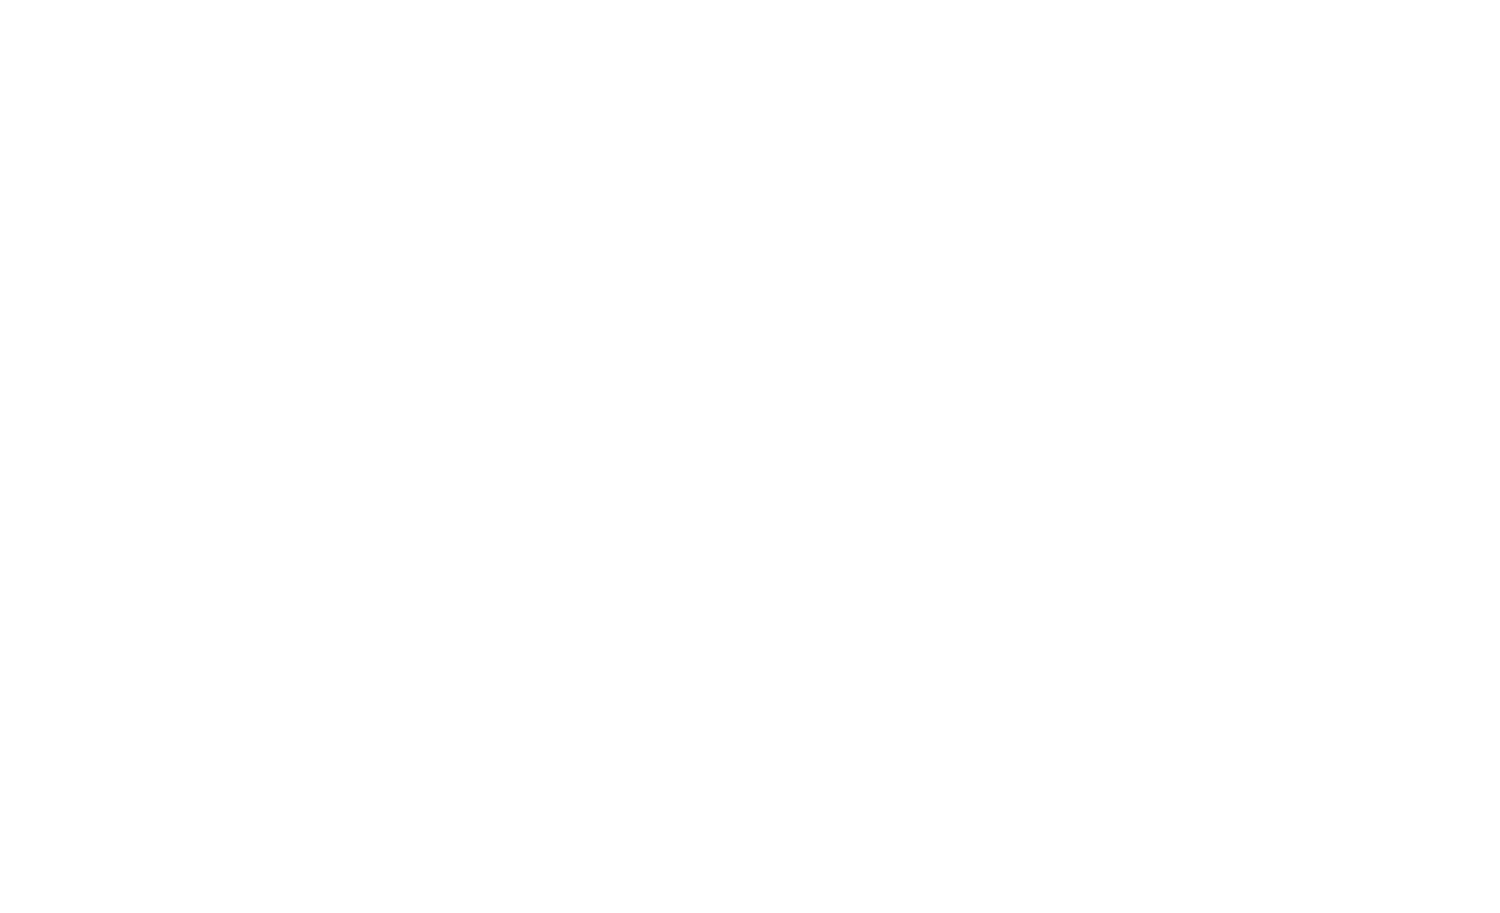 Elissa Houghton Photography